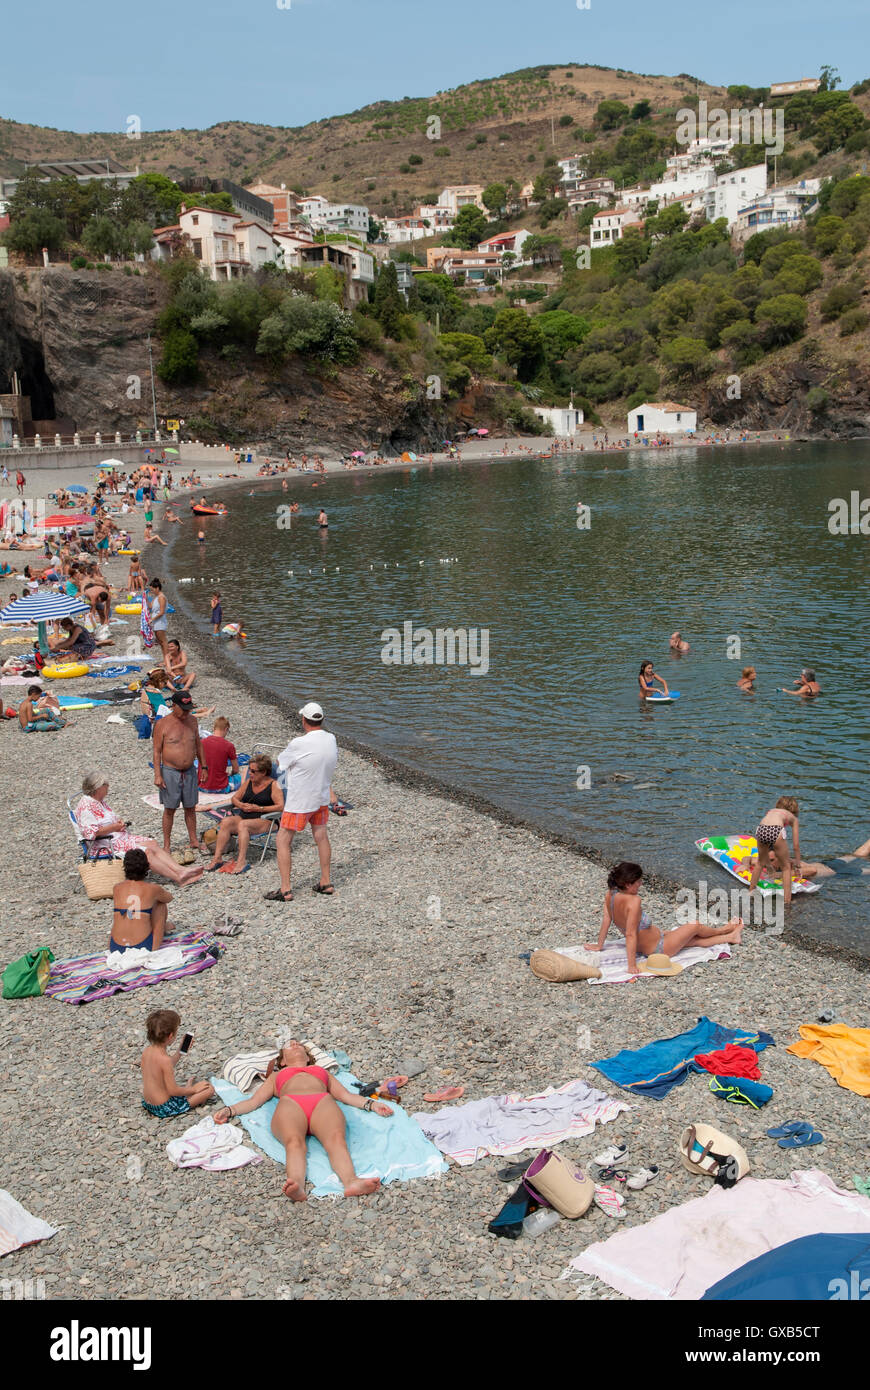 Portbou Spain Province of Girona, Catalonia, Spain. HOMER SYKES - Stock Image